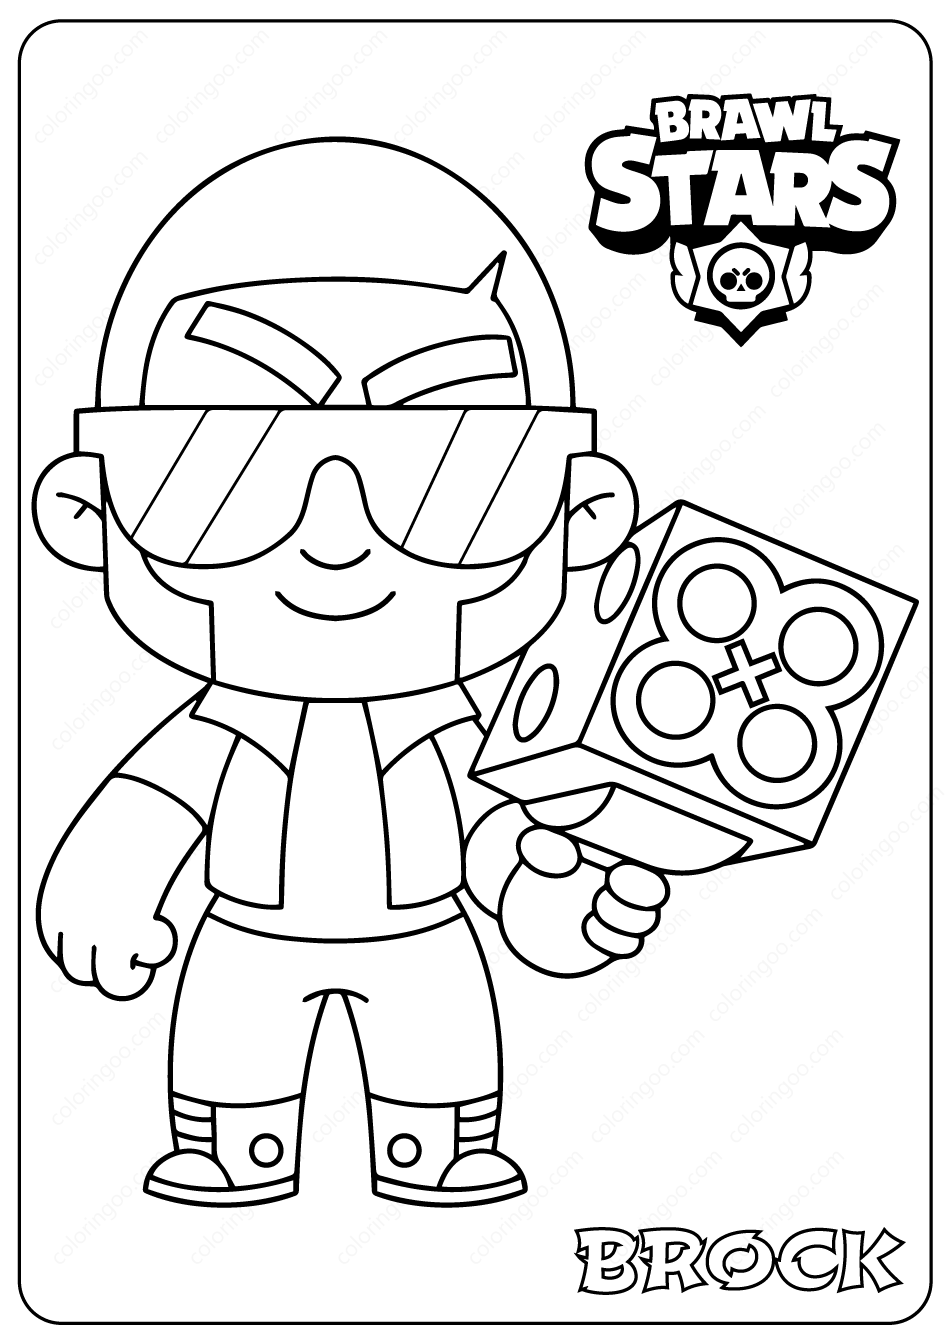 Printable Brawl Stars Brock Pdf Coloring Pages Star Coloring Pages Coloring Pages Star Cards